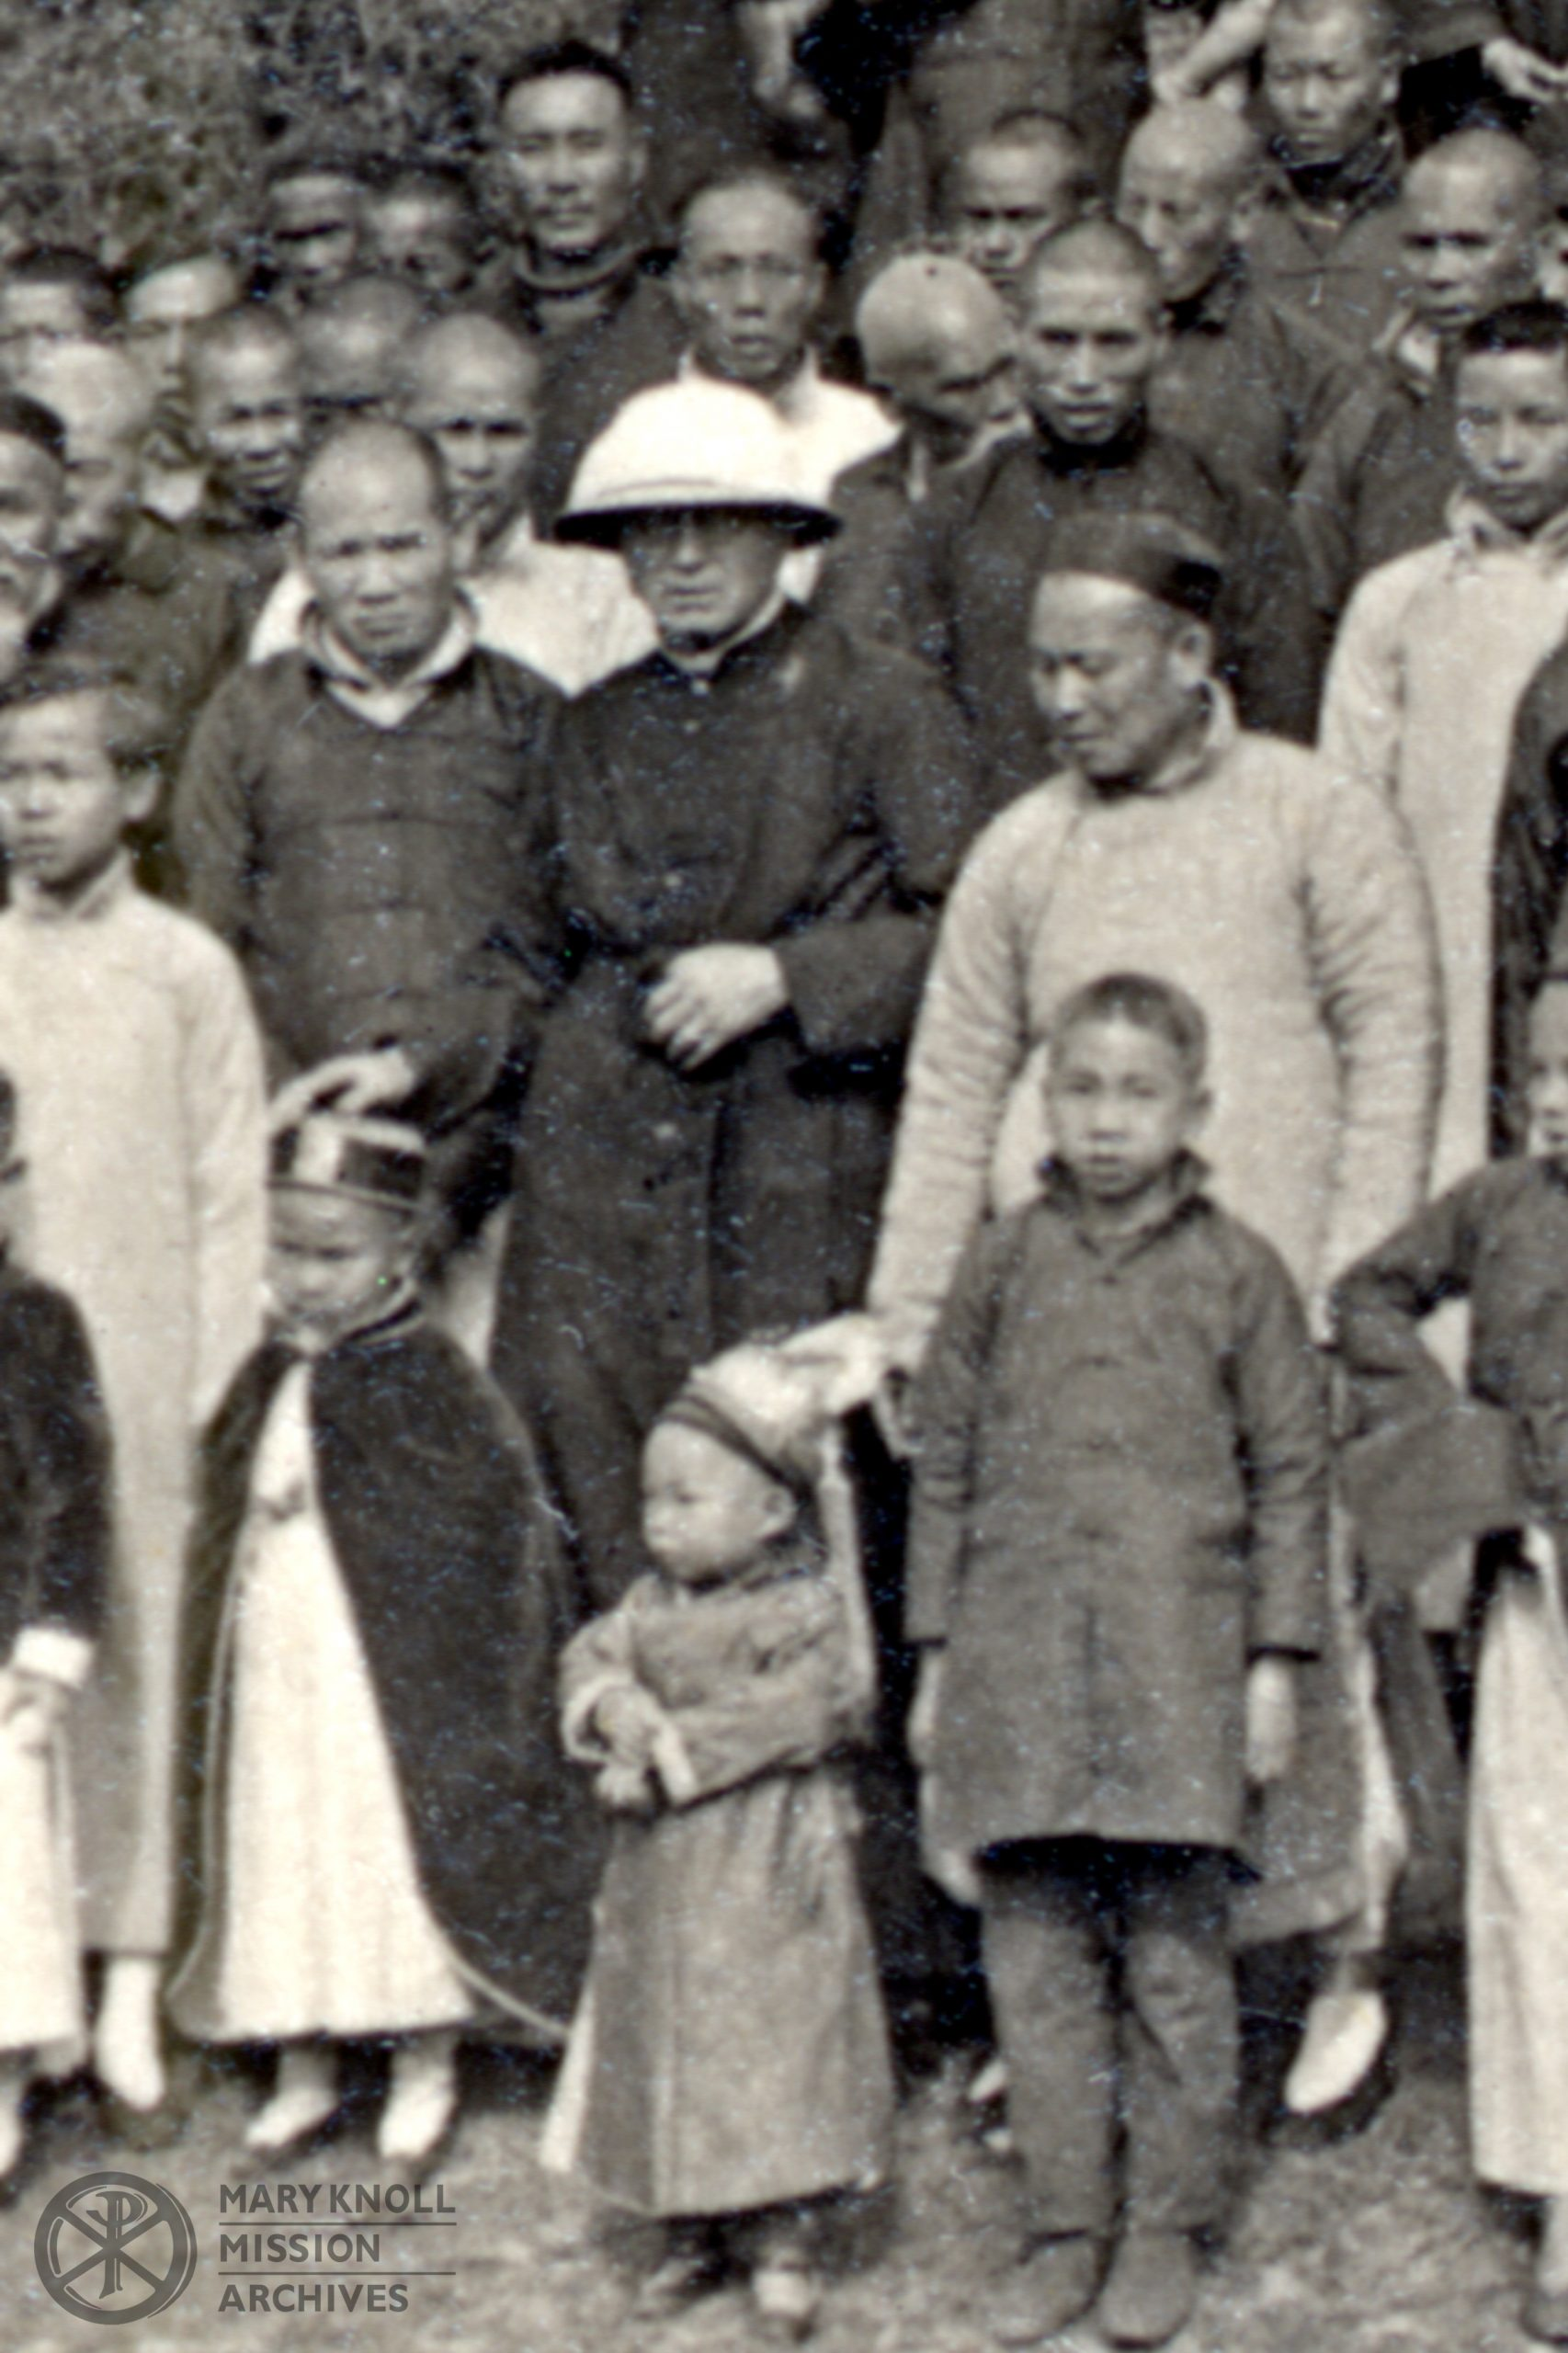 Fr. Thomas Price with the congregation in Yeungkong, 1918